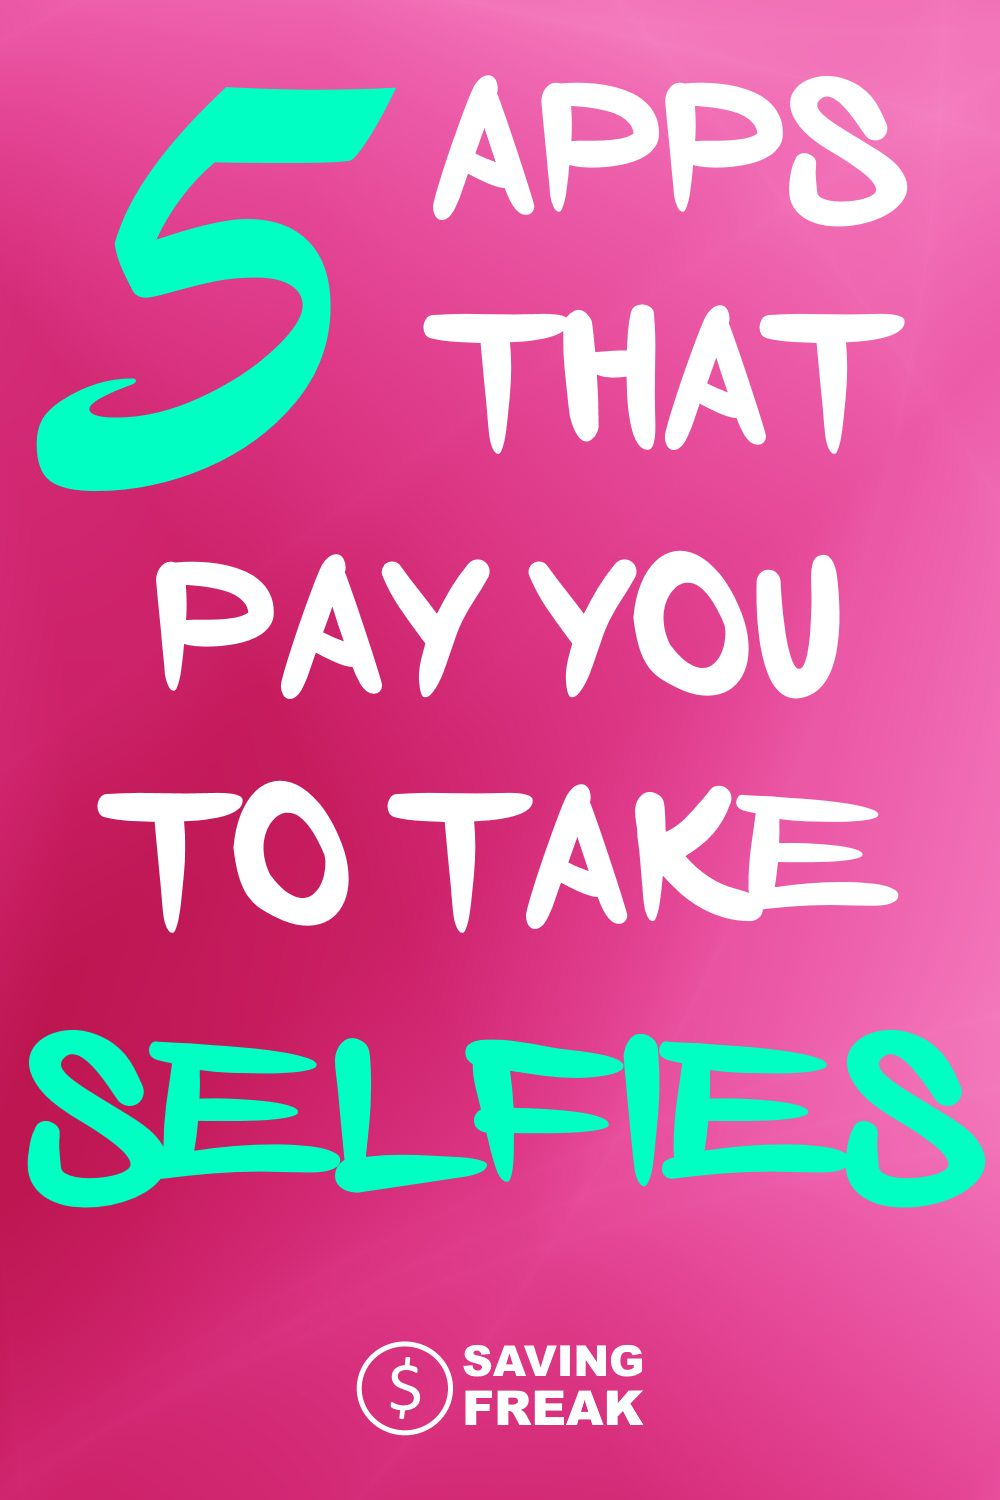 apps that will pay you to take selfies and pictures of yourself wearing specific items